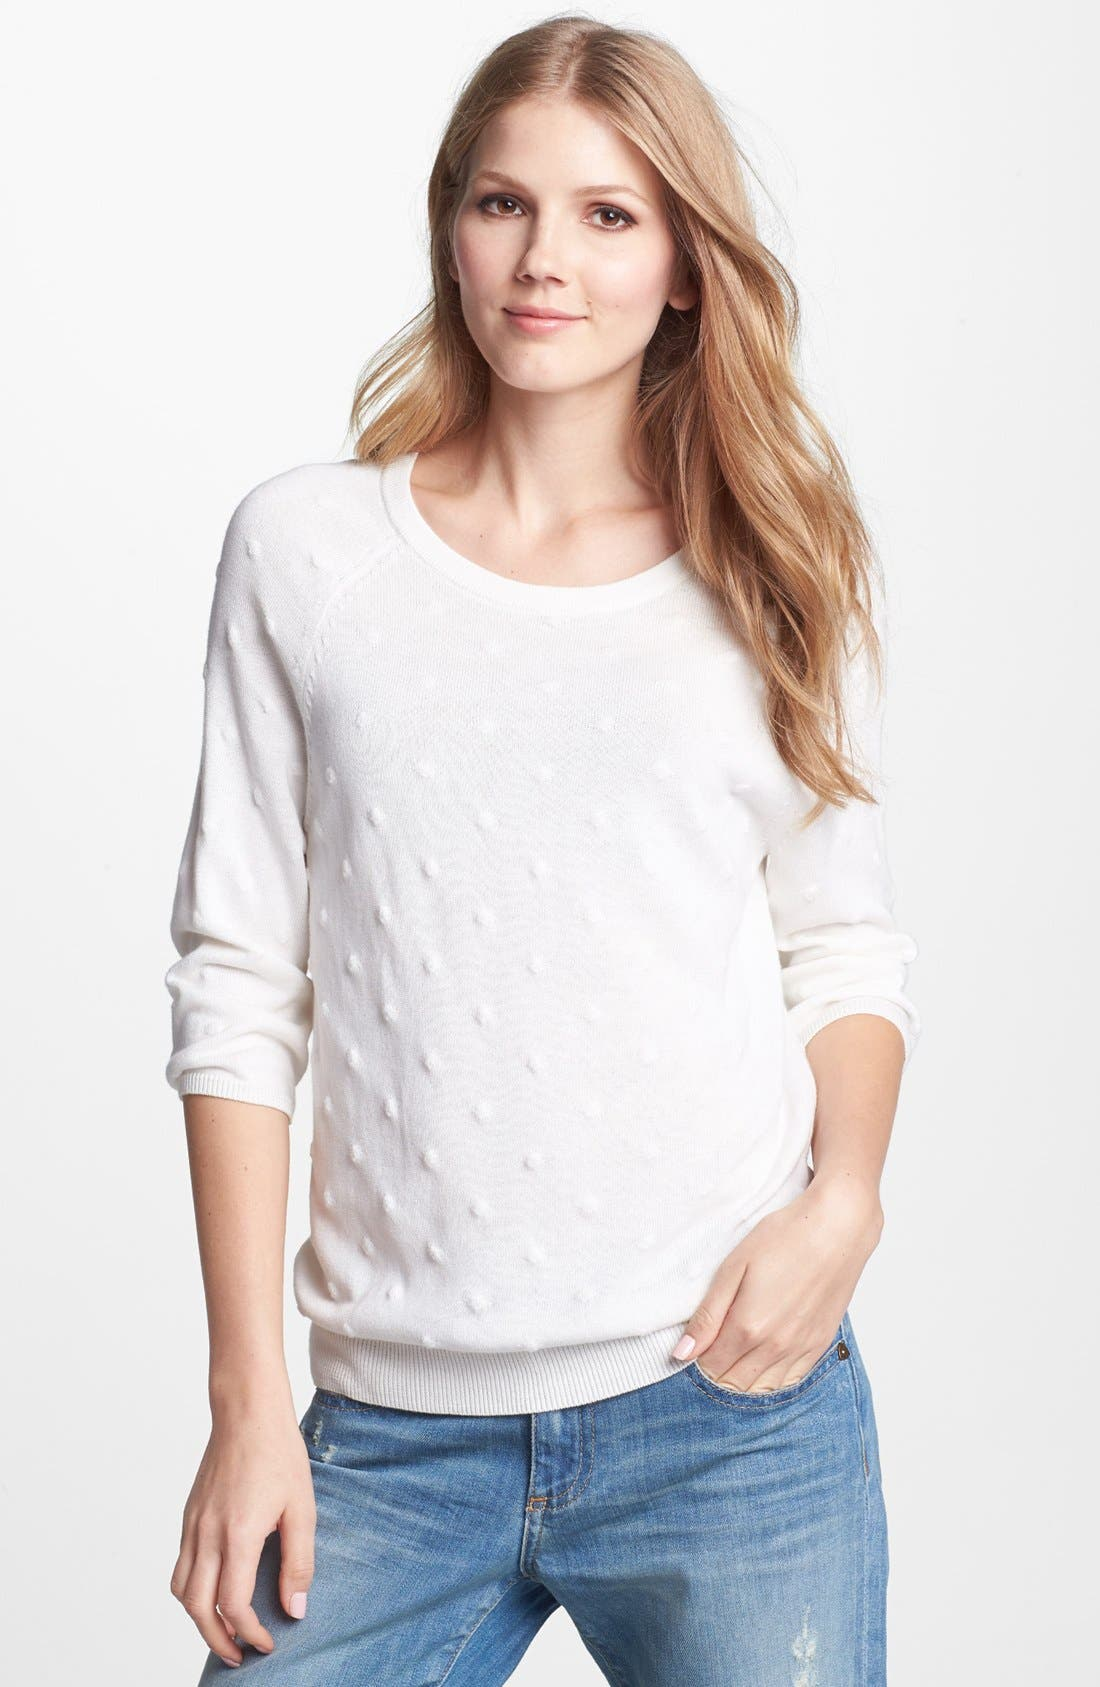 Alternate Image 1 Selected - Vince Camuto Bubble Stitch Sweater